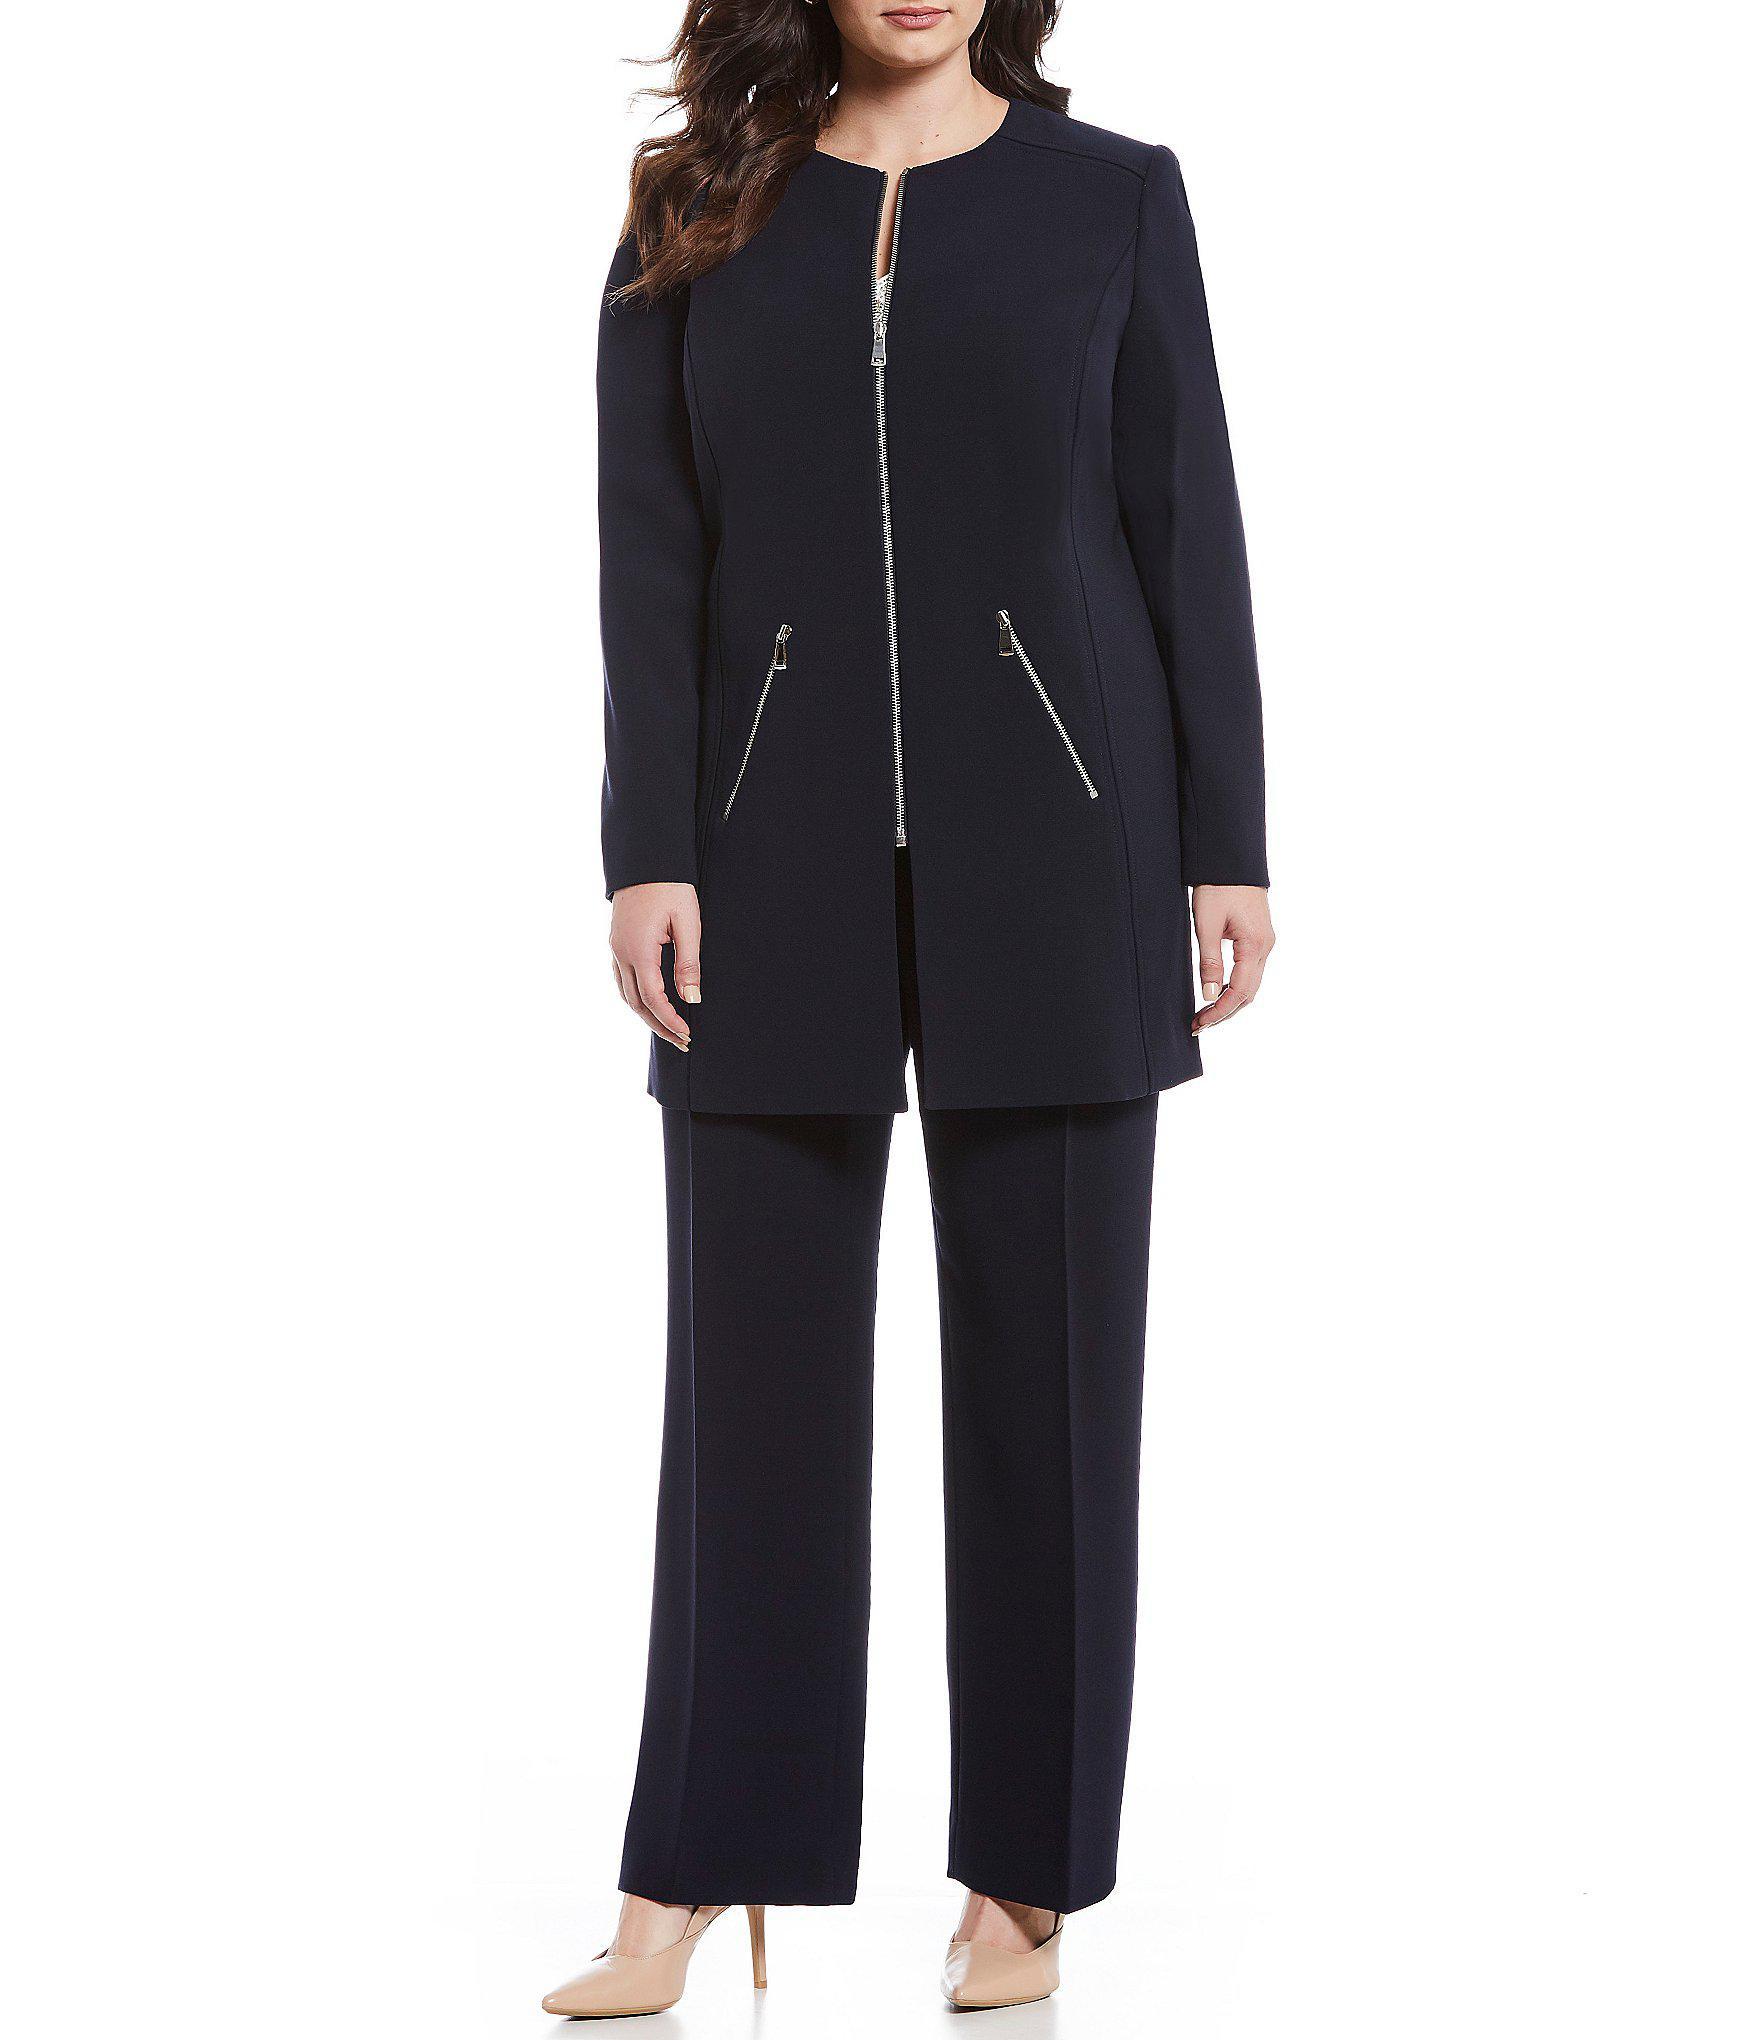 f99f34e568 Tahari Plus Size Zip-front Topper Jacket 2-piece Pant Suit in Blue ...